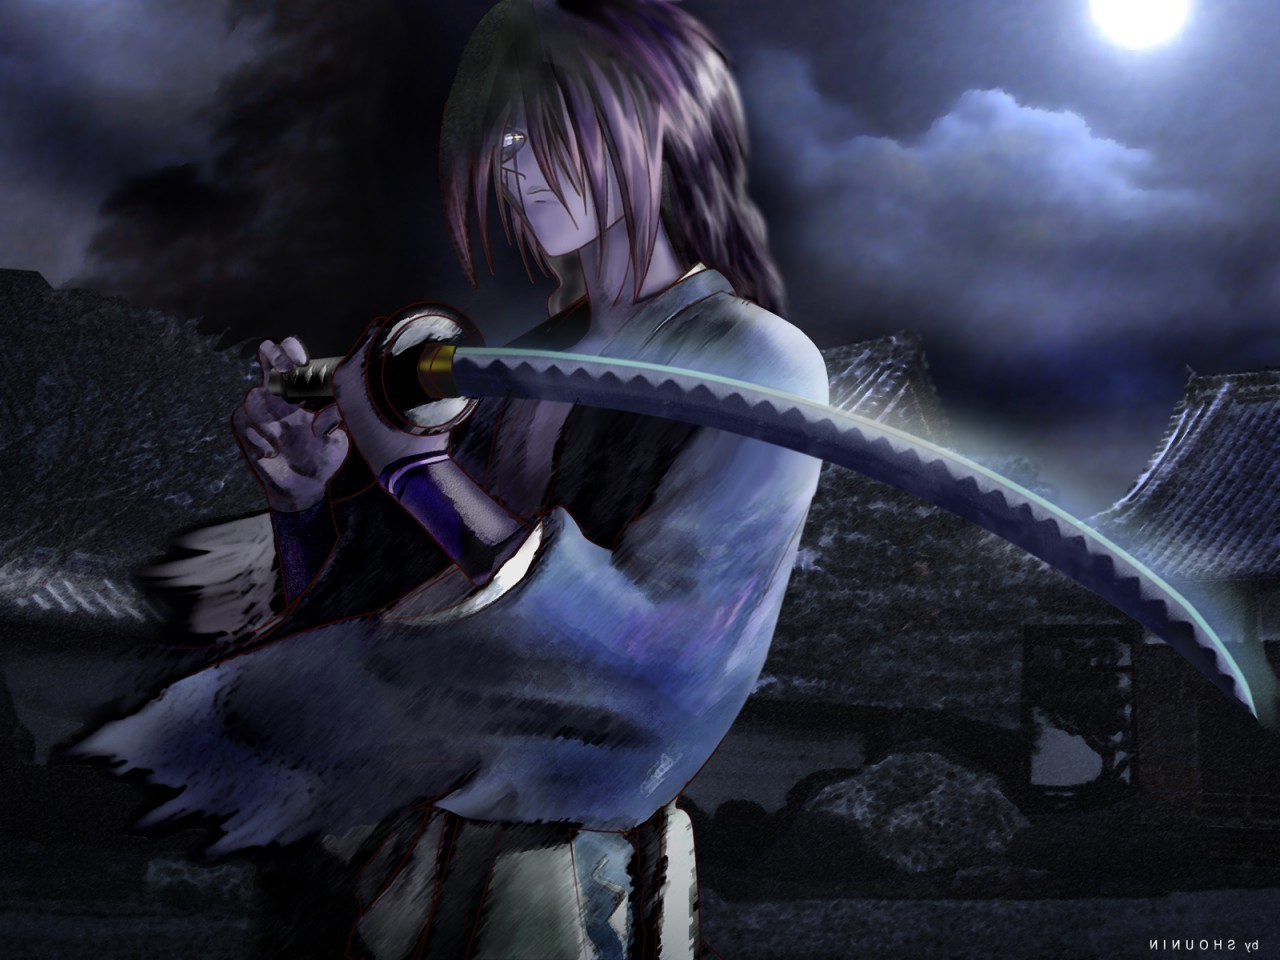 Fantasy Girl Wallpaper Full Hd Anime Rurouni Kenshin Sword Himura Kenshin Wallpapers